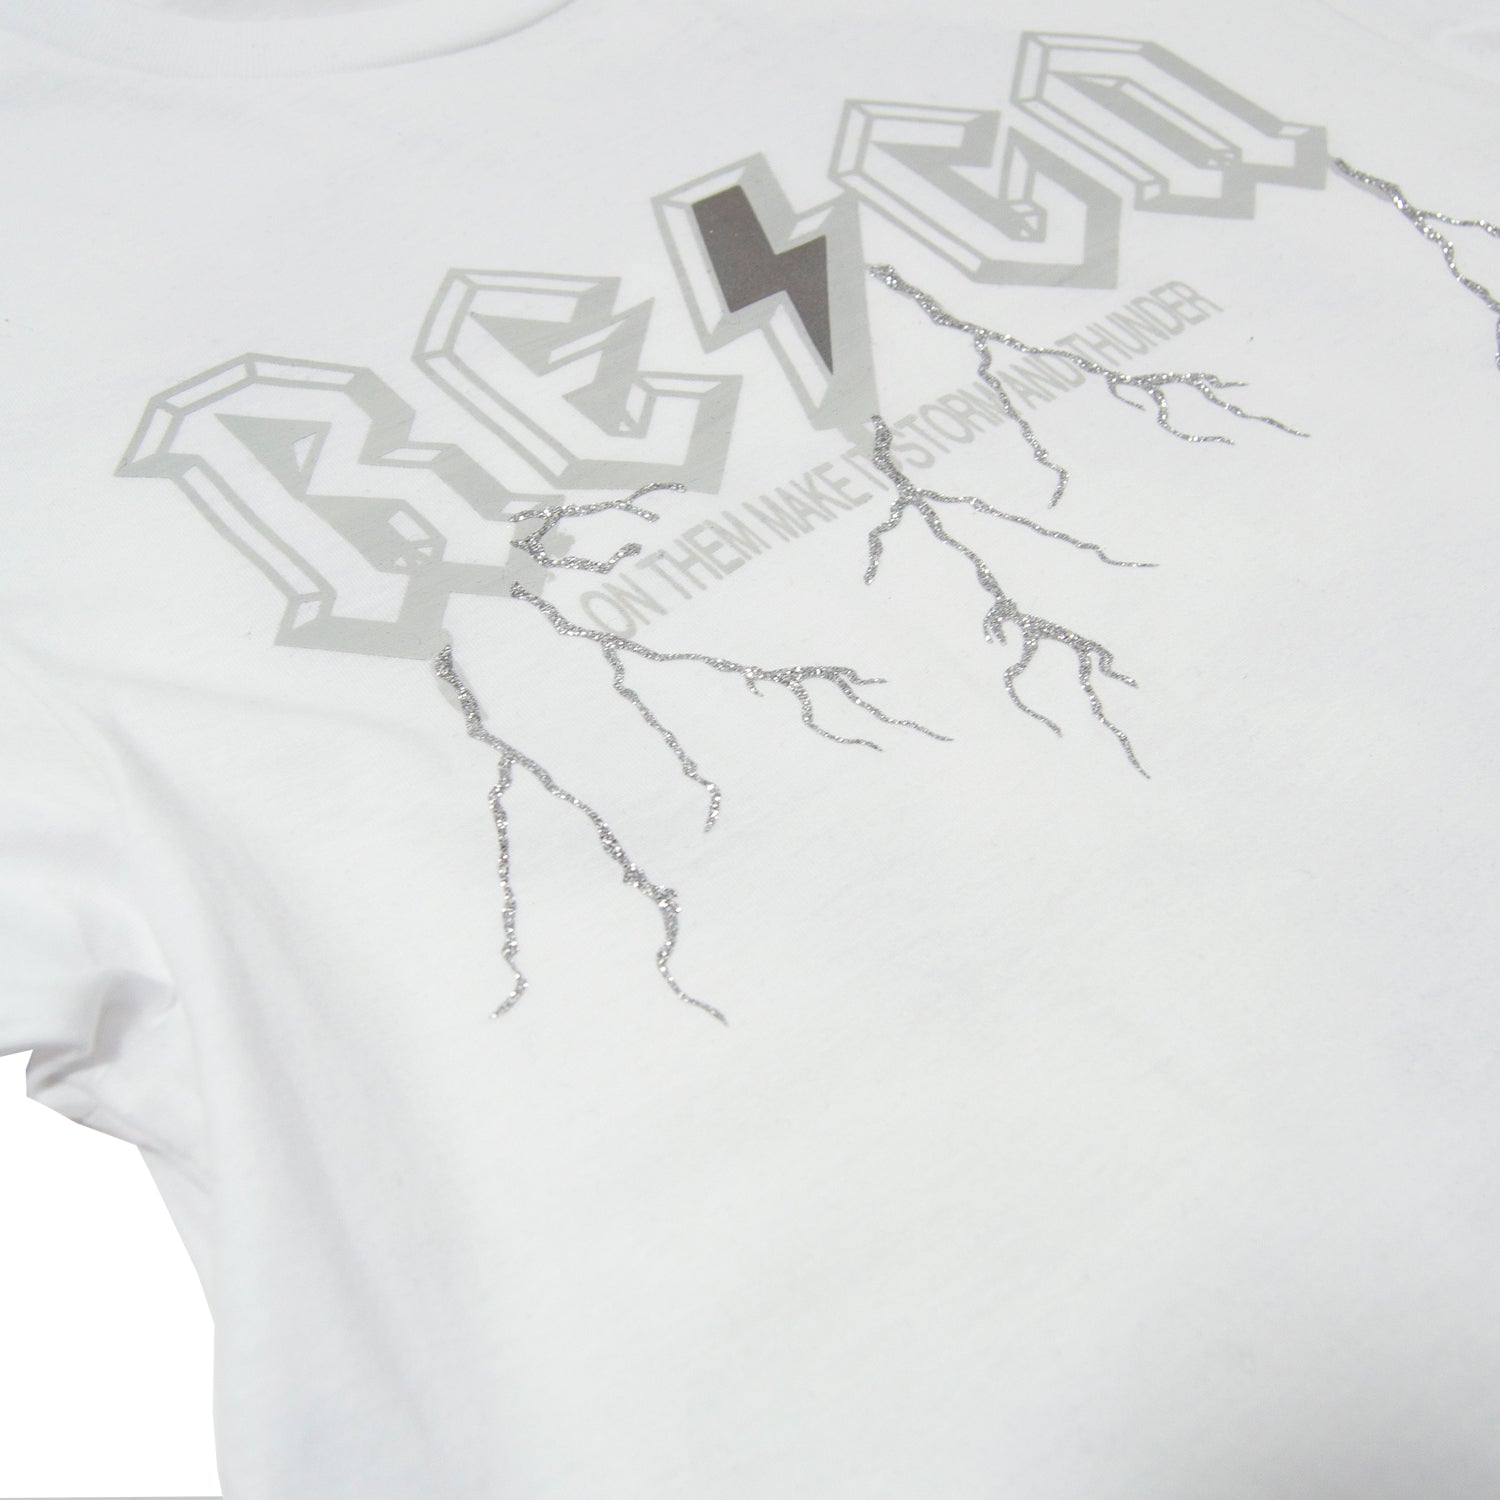 White/Grey Re⚡️gn 2 T-shirt - Gifts of Fortune